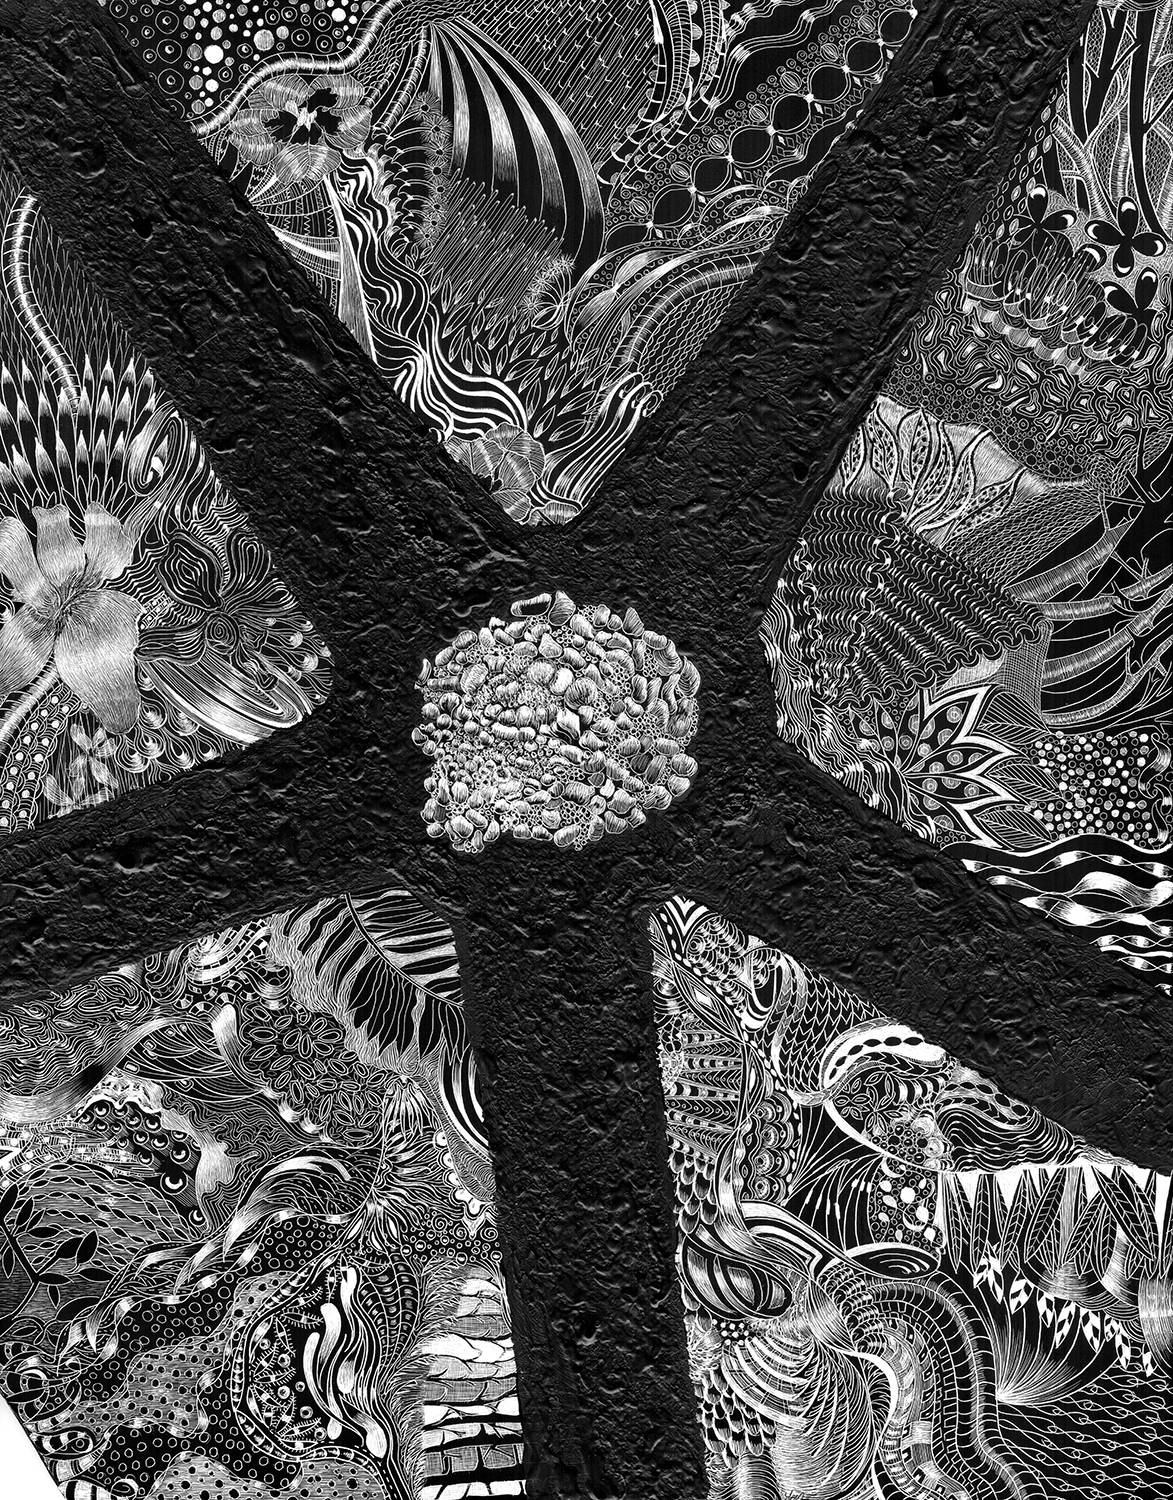 """SC 42  #3151 Black Scratchboard Mounted with Sawtooth Hanger: 11"""" x 14"""" 2017 $2000.00 Freeport Art Museum Exhibition"""